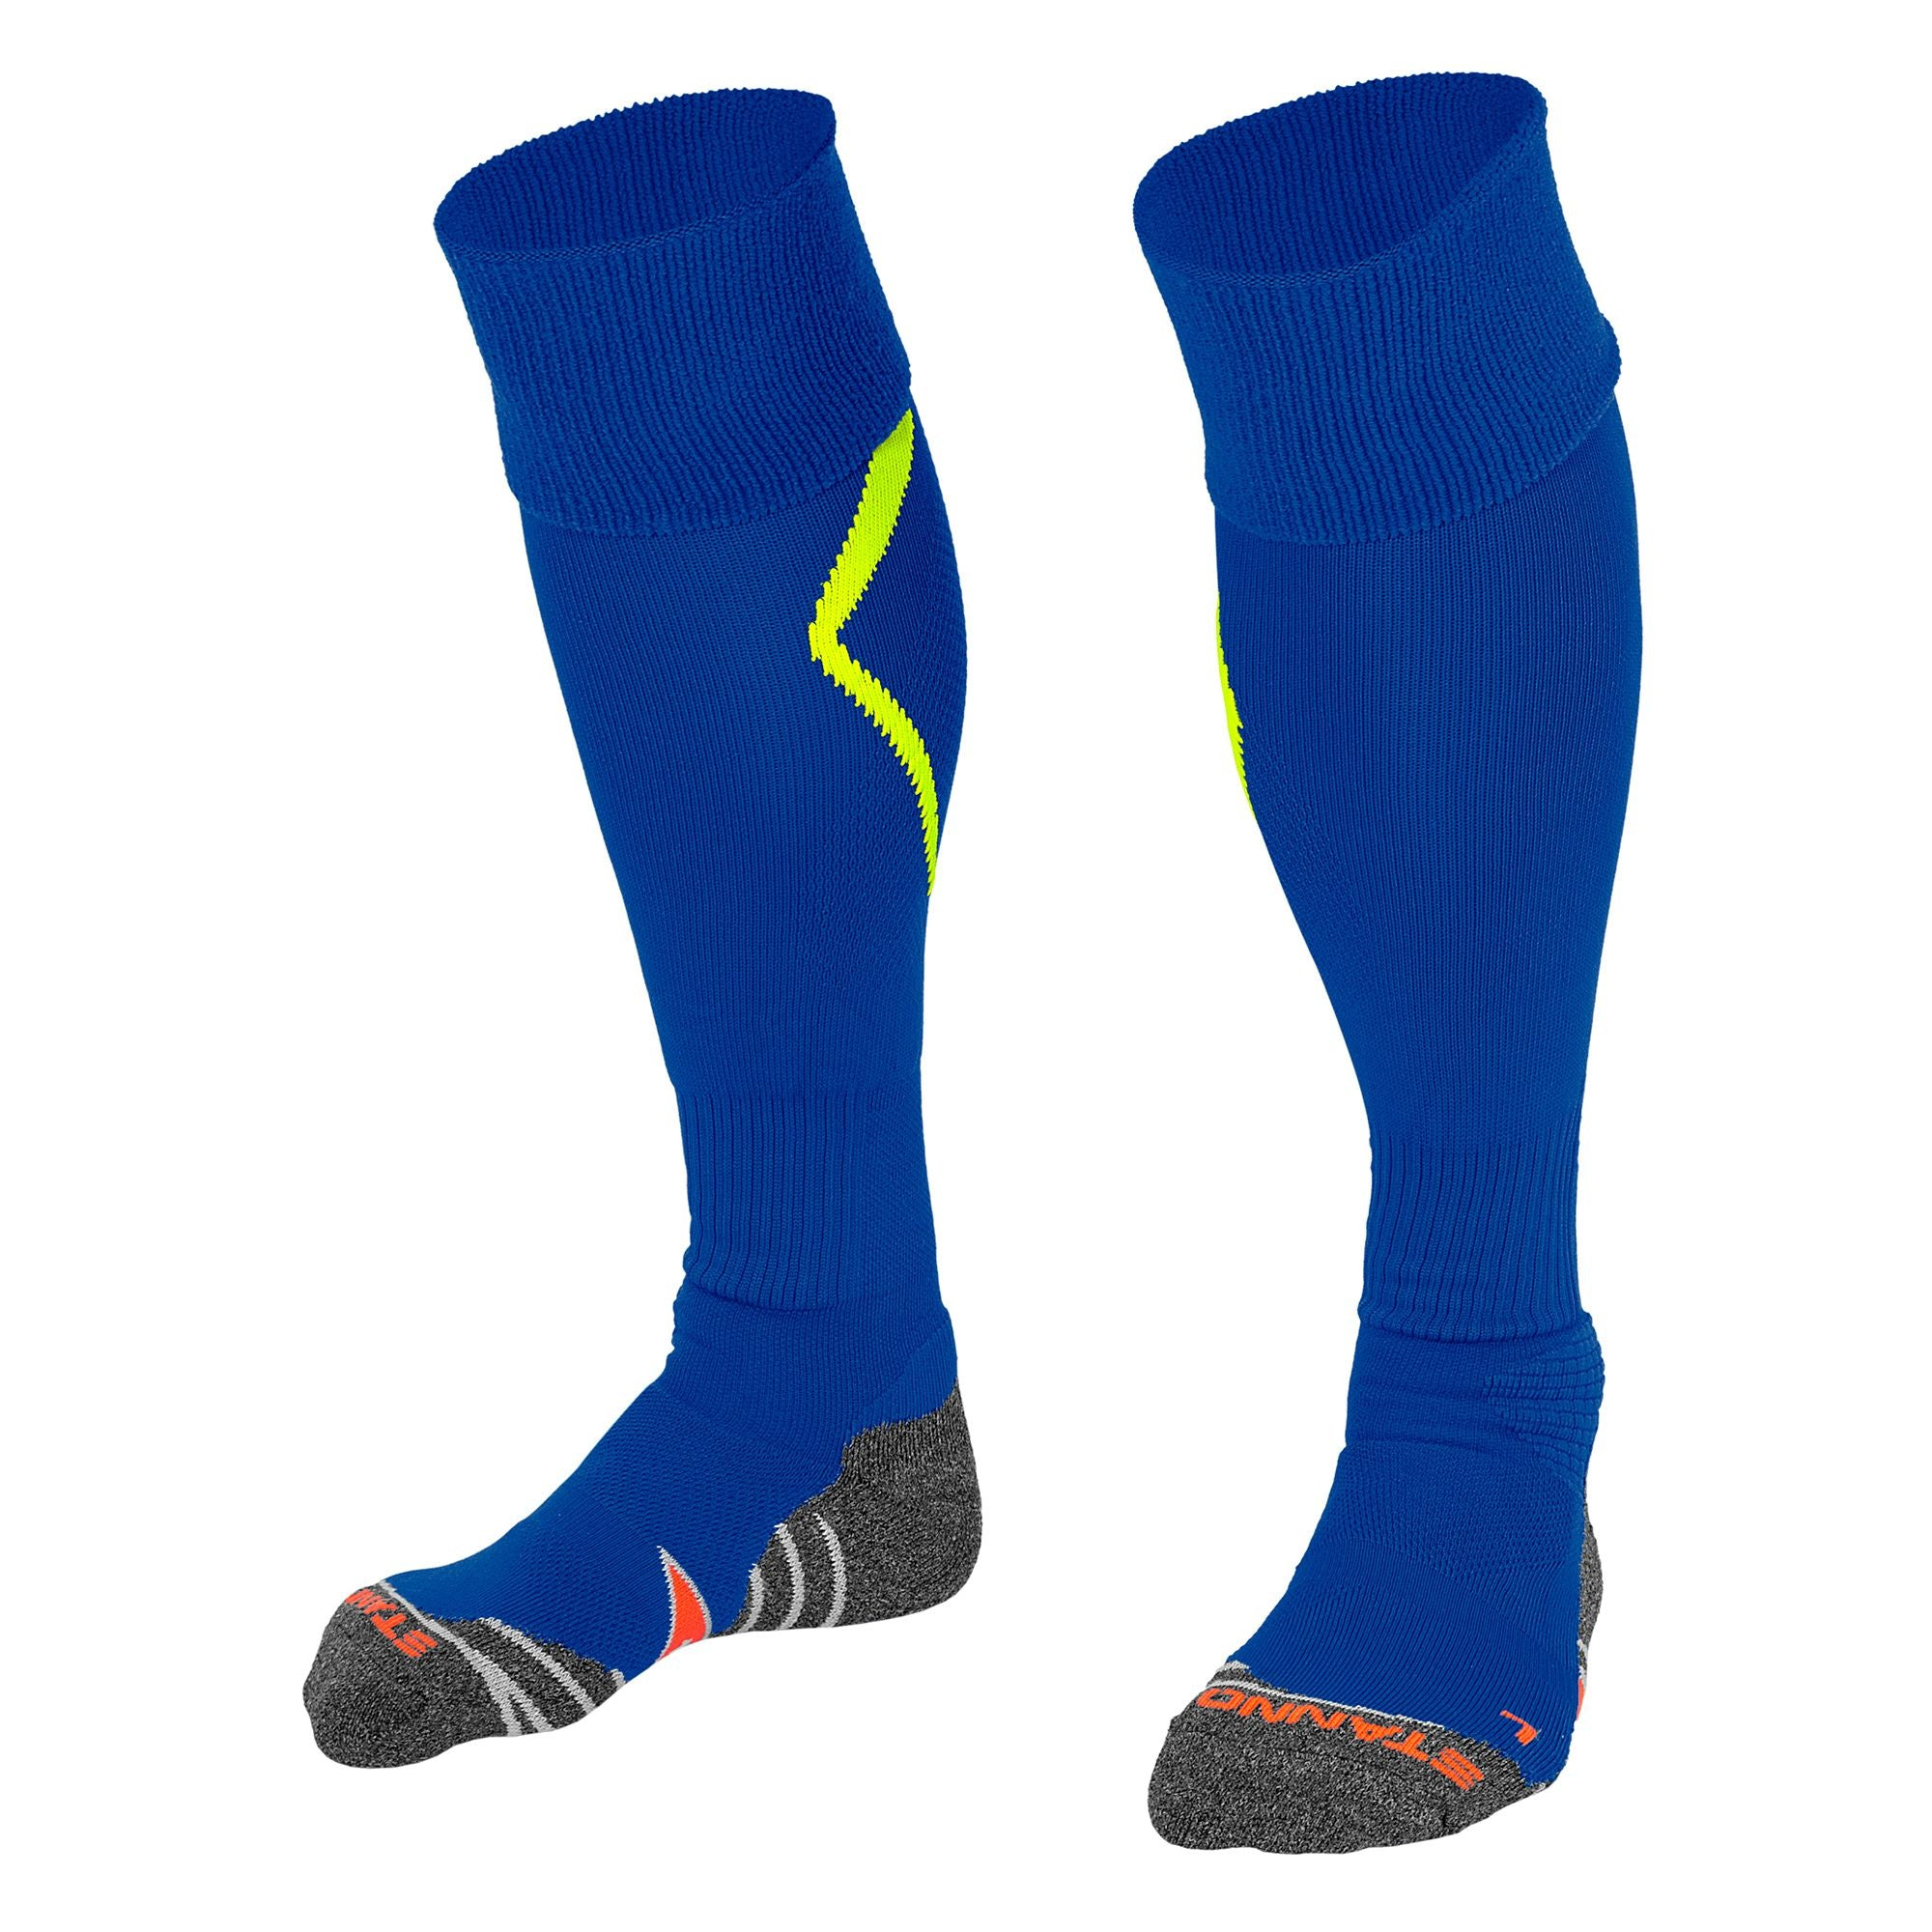 Stanno Forza socks in deep blue with neon yellow arrow design on the calf.